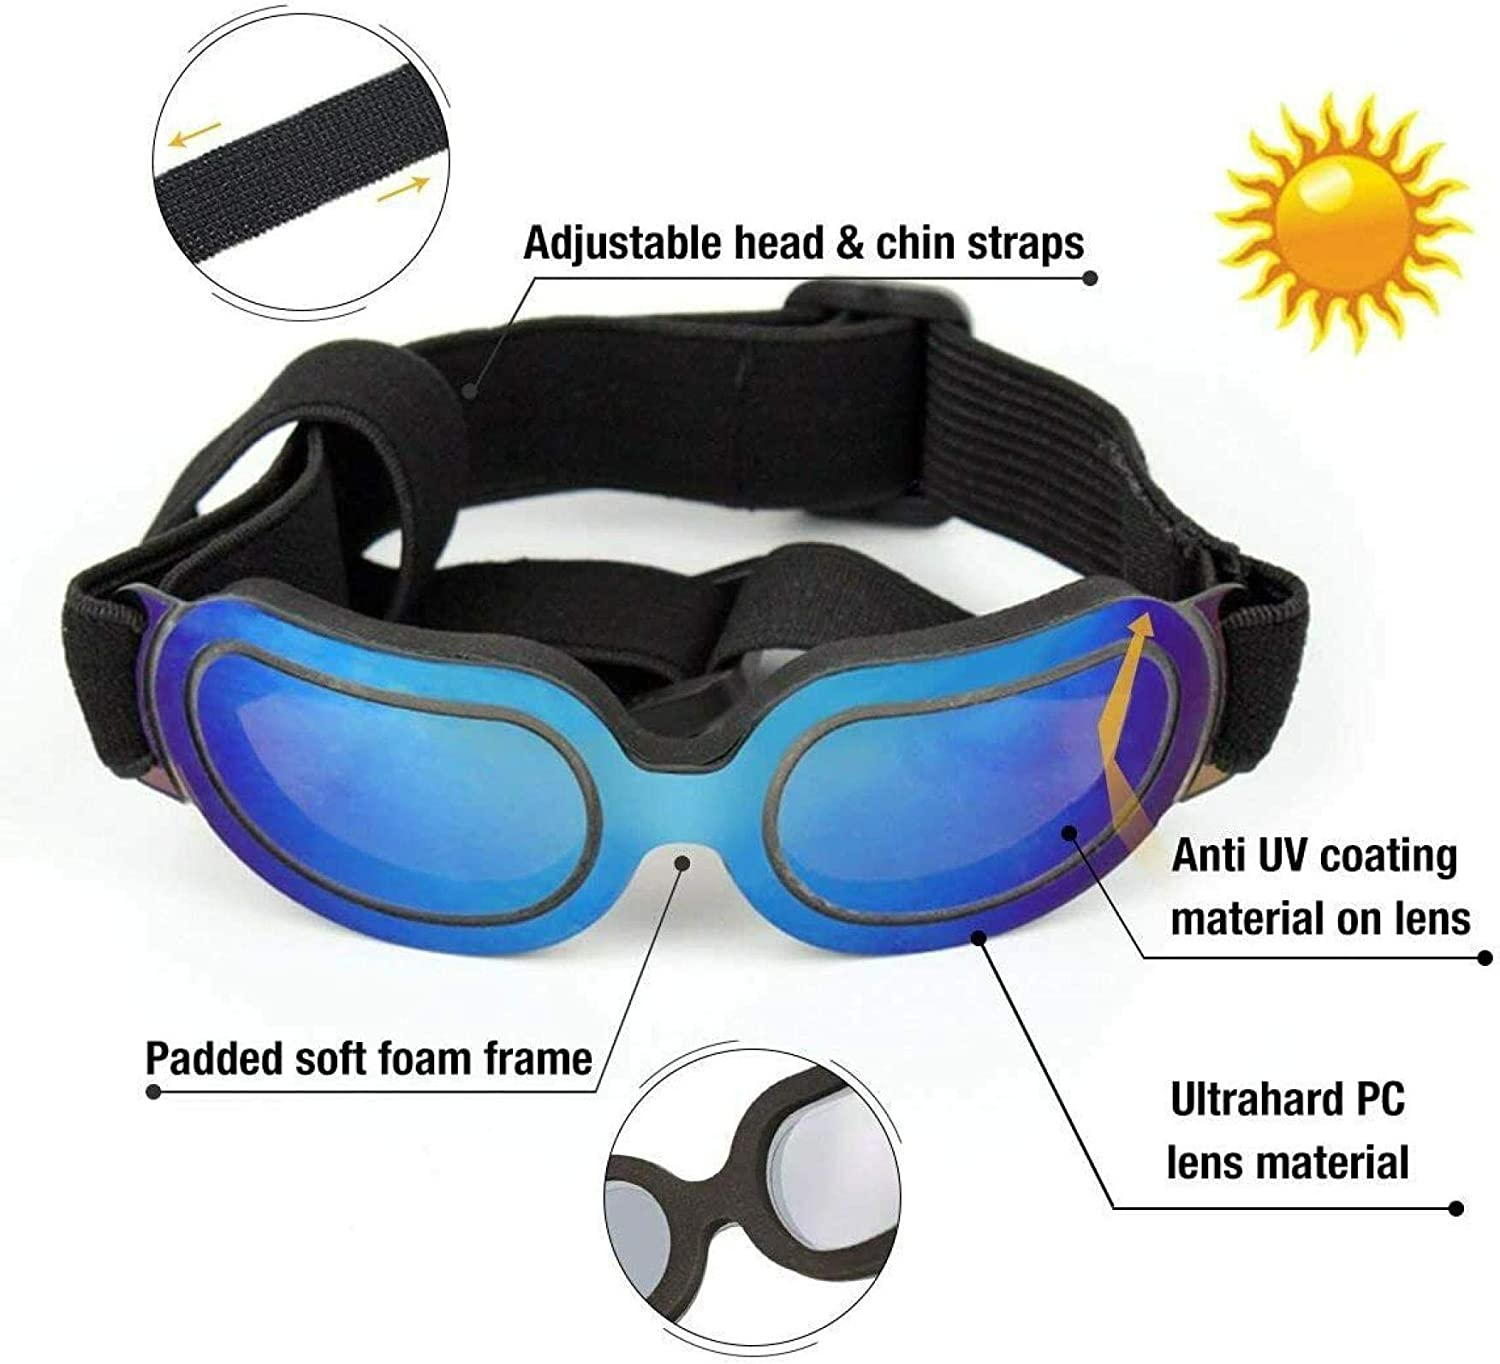 Blue ZGHYBD Small Dog Sunglasses Dog Goggles for UV Protection Sunglasses Windproof,Pet Goggles UV Protection Waterproof Windproof Sunglasses with Adjustable Straps for Doggy Puppy Cats